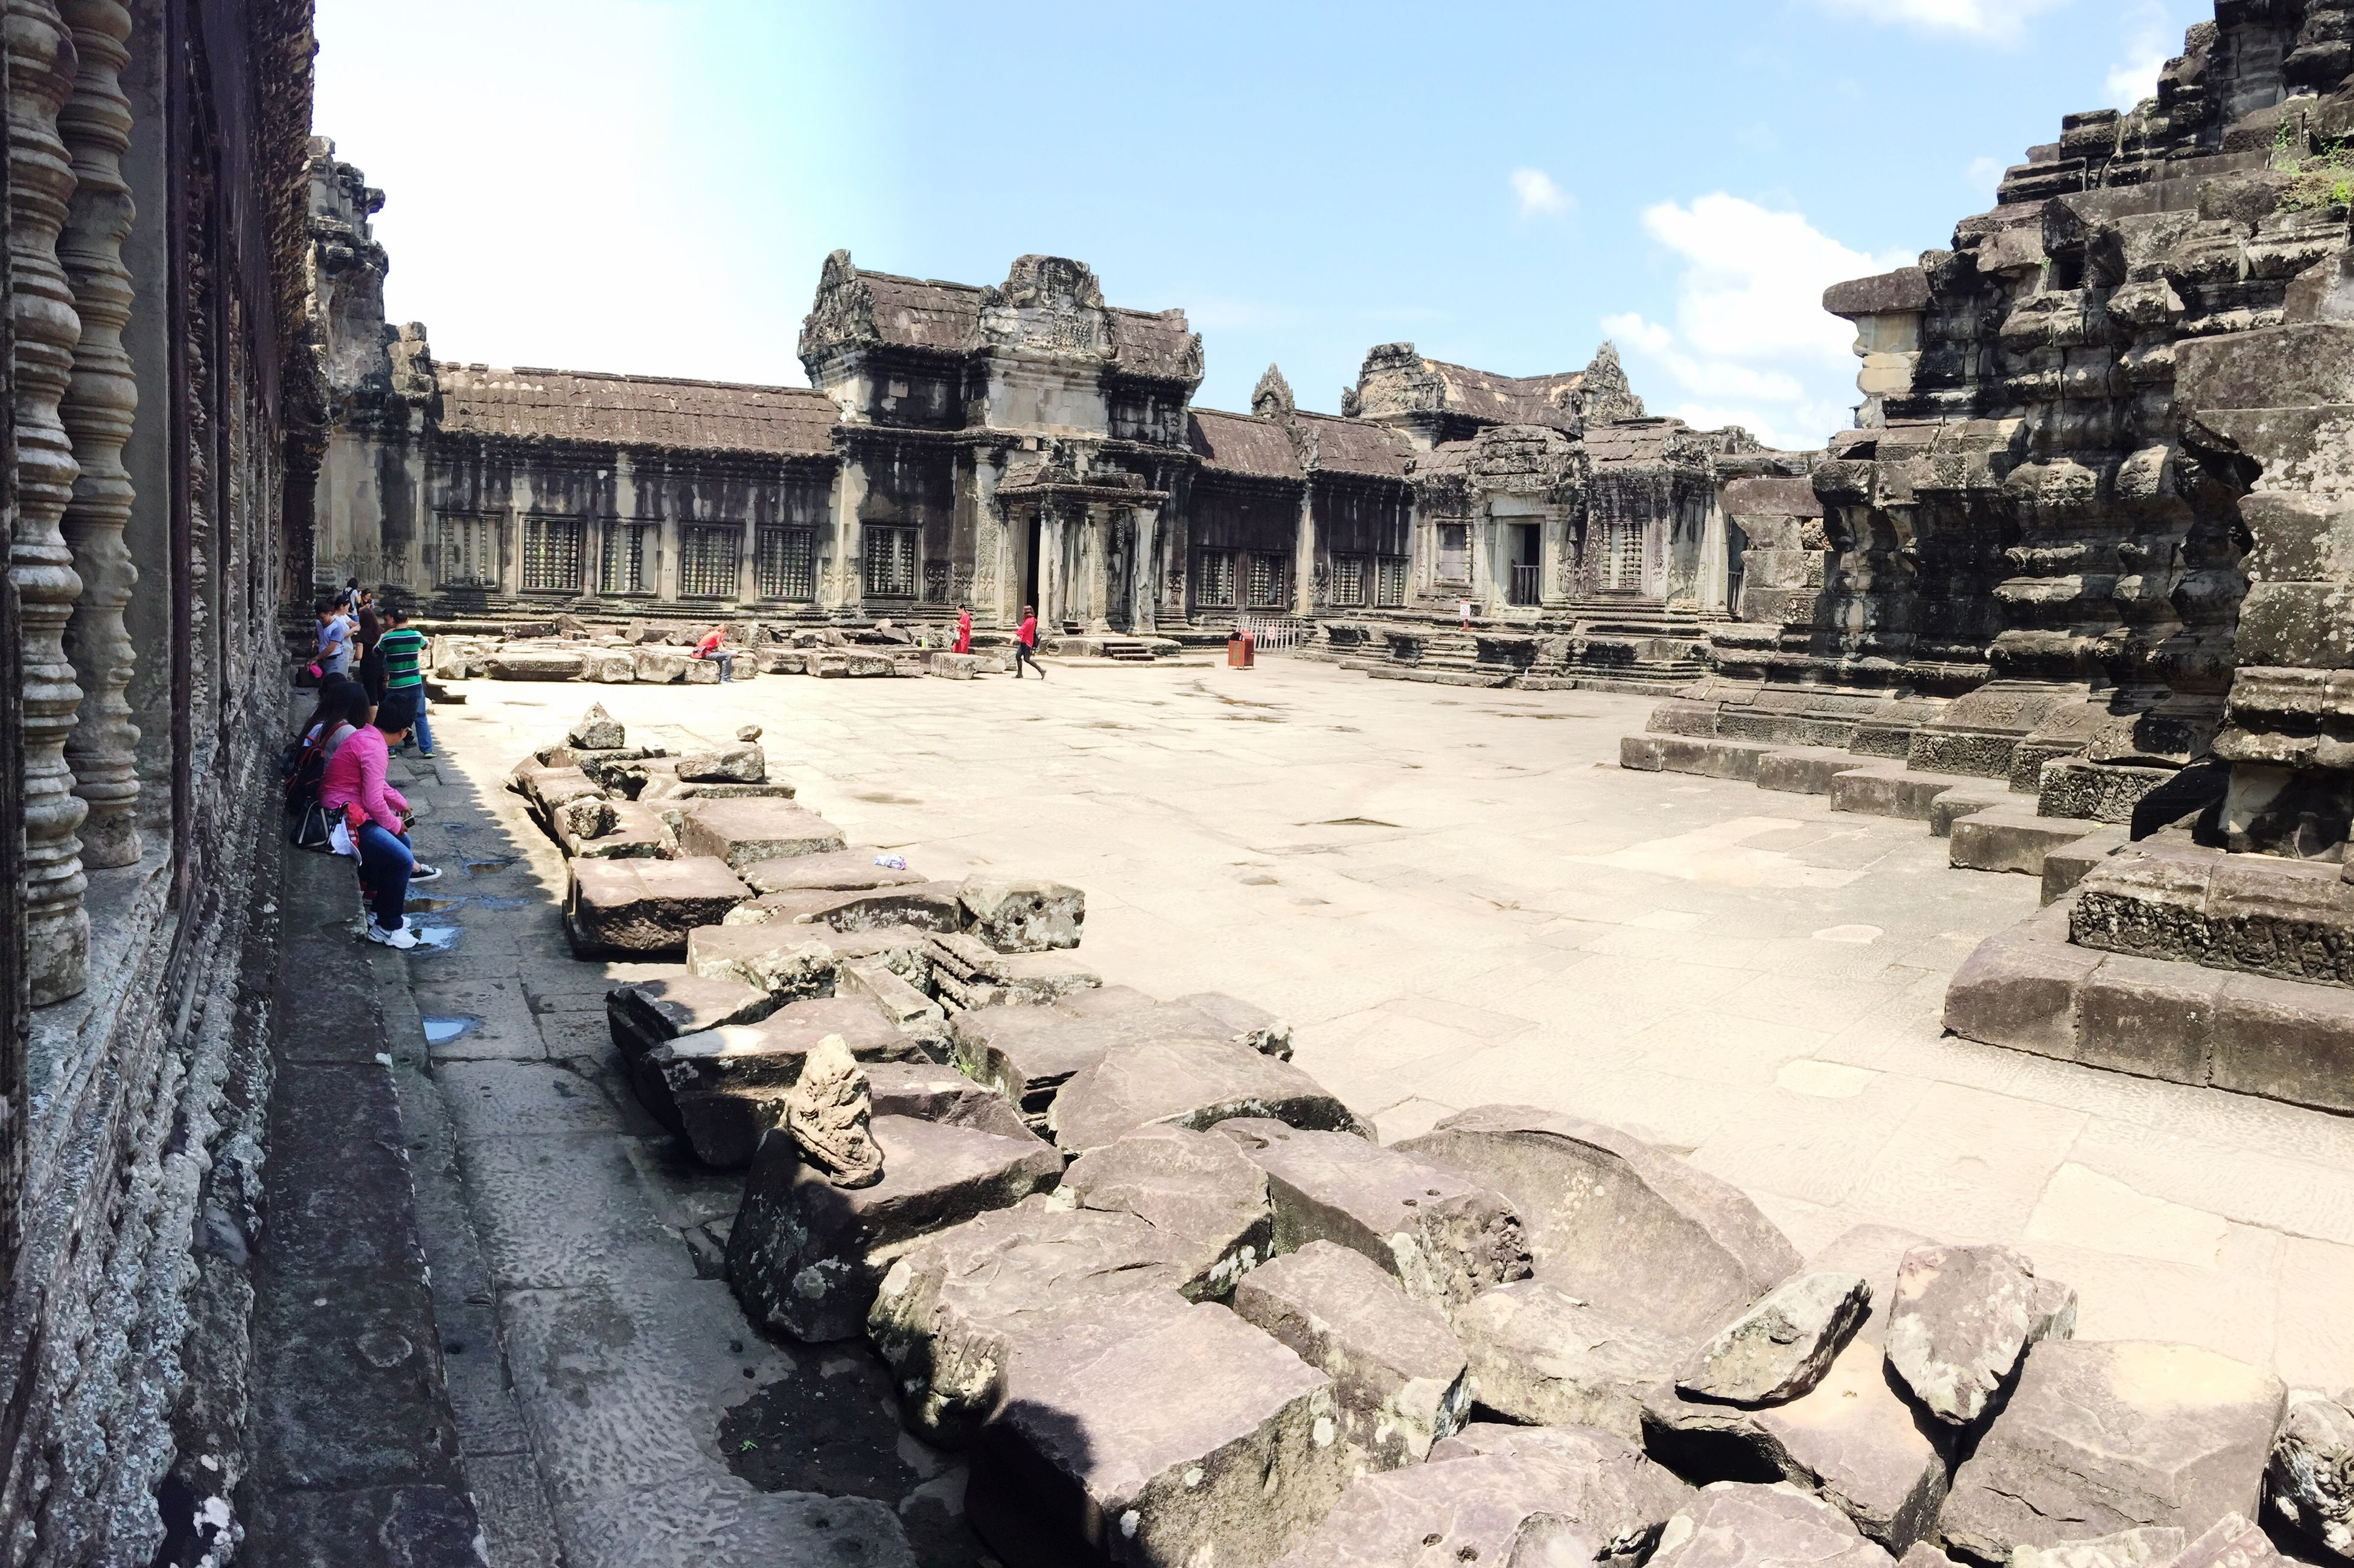 built structure, architecture, building exterior, person, men, sky, travel, travel destinations, famous place, the past, in front of, old ruin, tourism, history, ancient, group of people, architectural column, stone material, colonnade, outdoors, day, unesco world heritage site, place of worship, cloud - sky, historic, ancient civilization